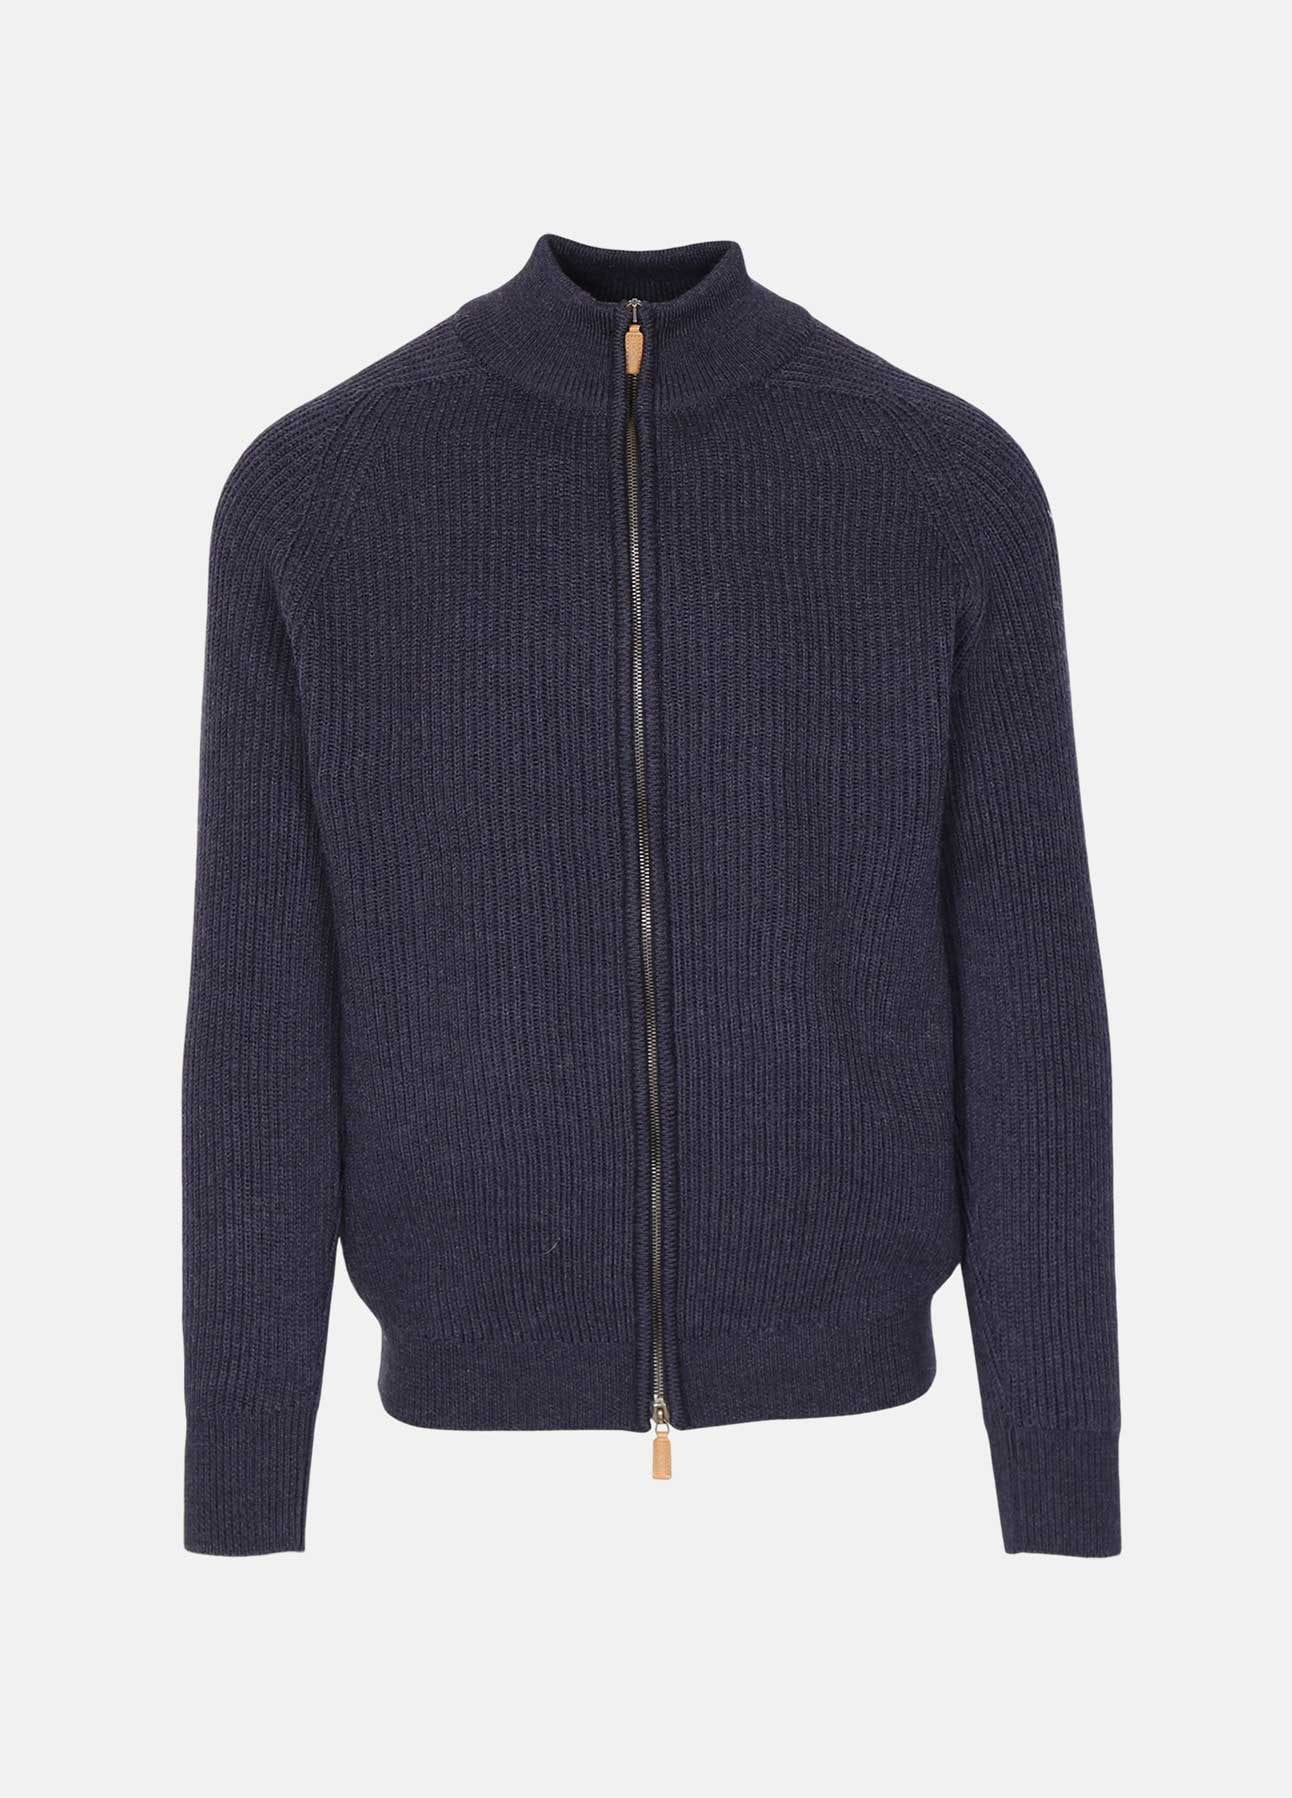 Blå Merino cardigan fra William Lockie